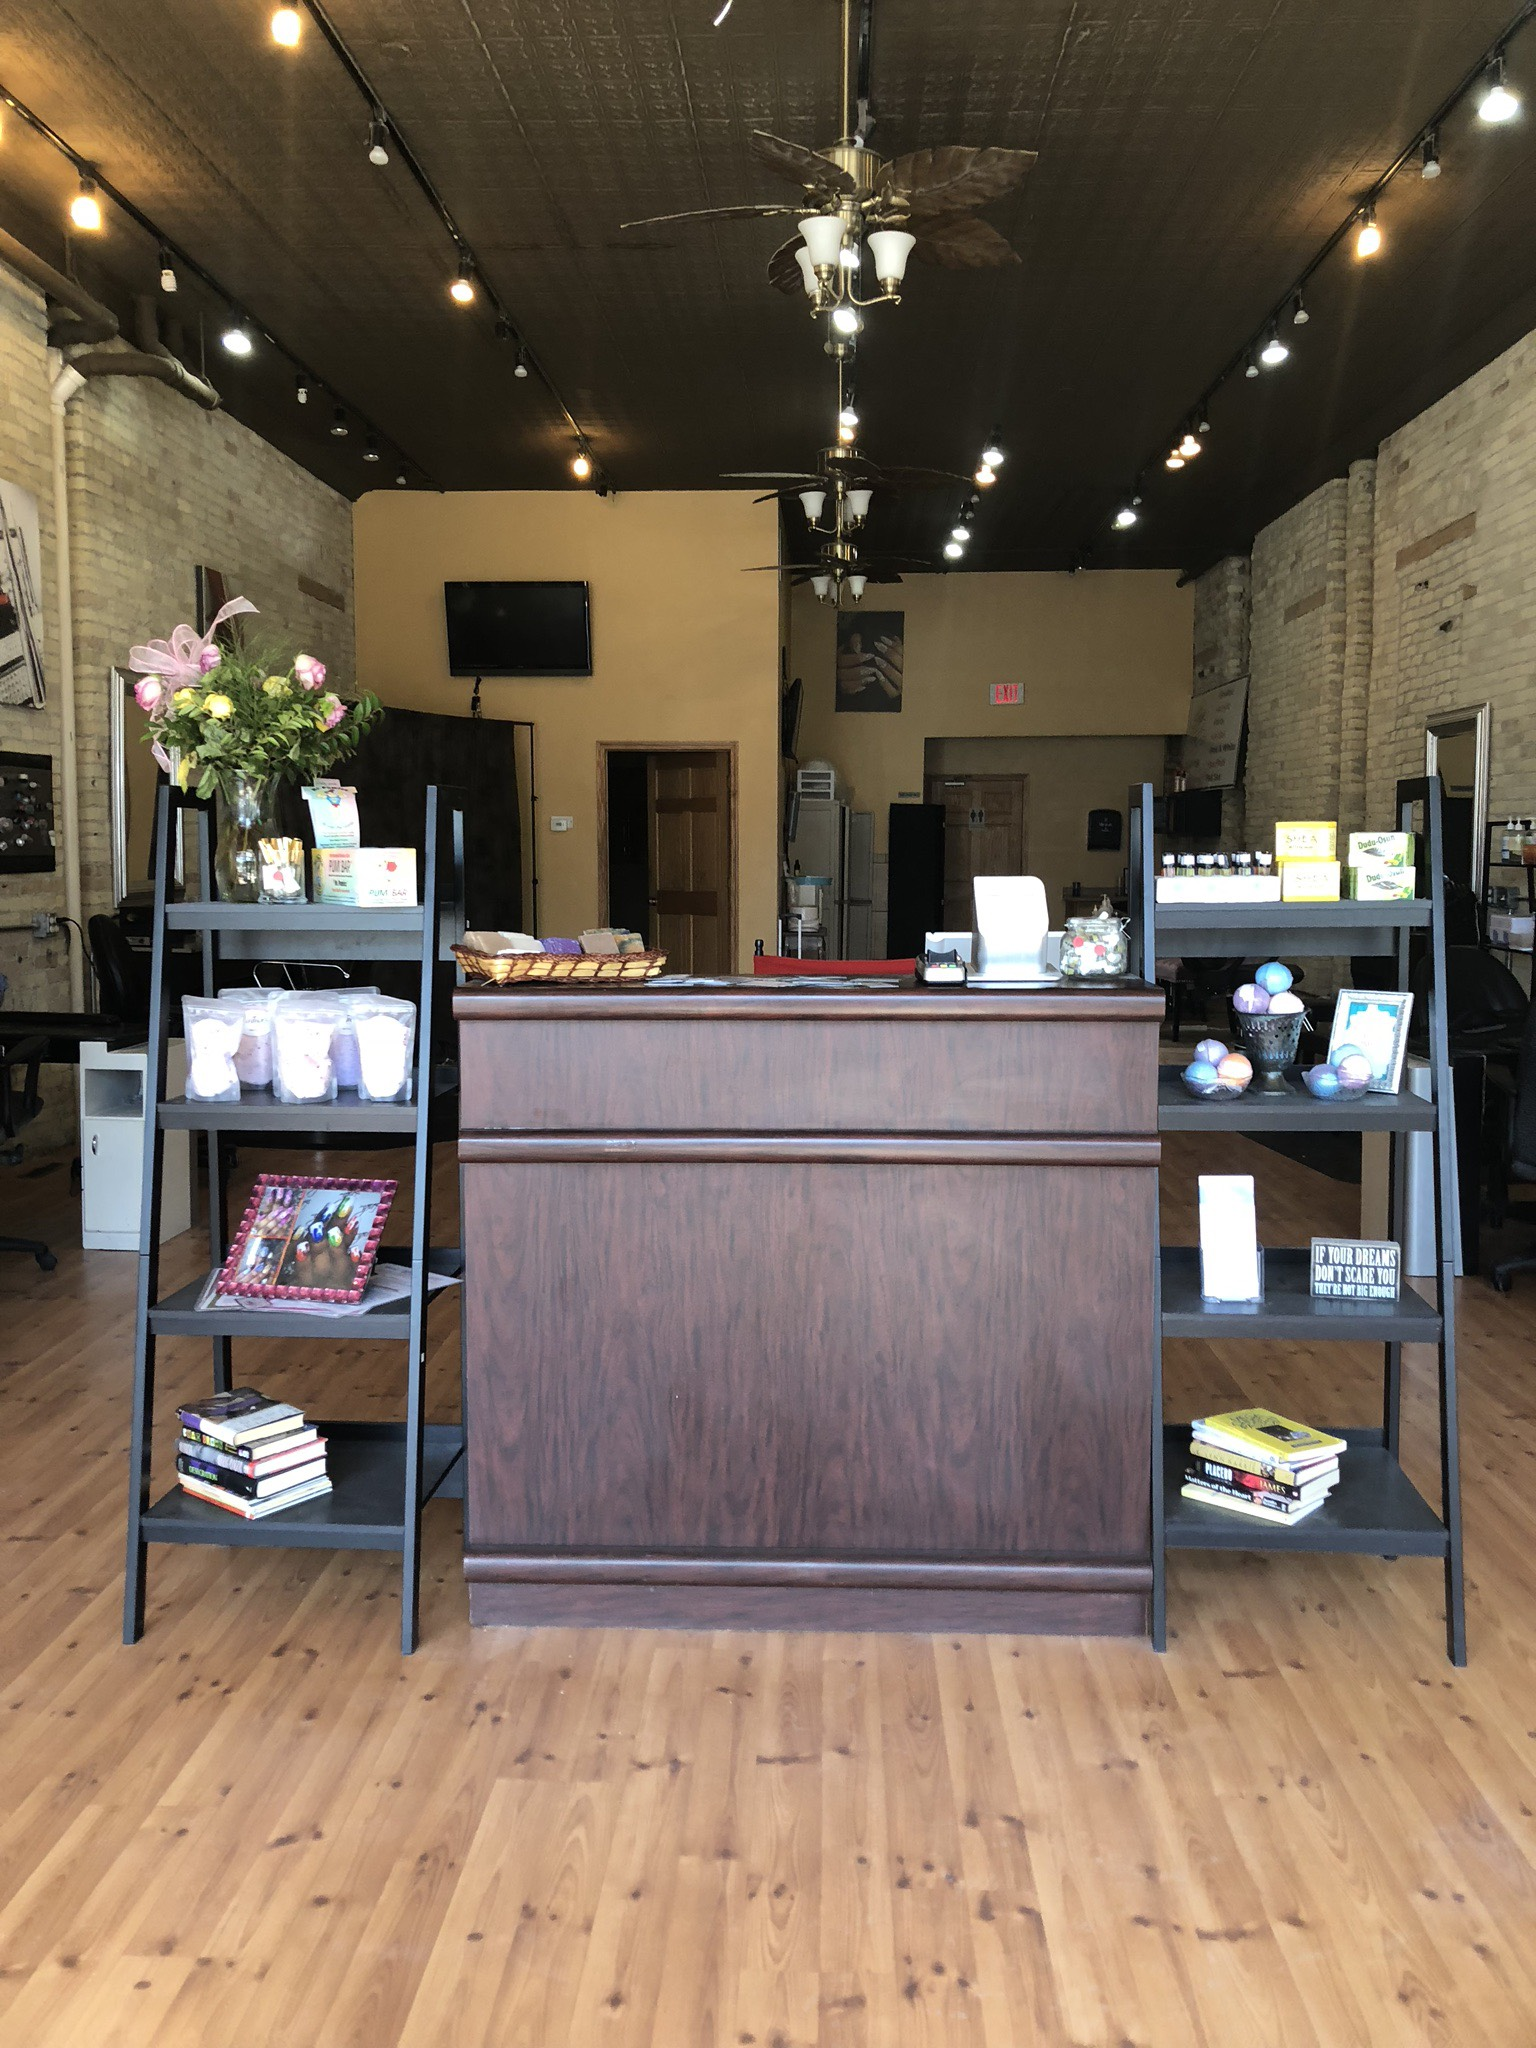 Black Owned Nail Salons Near Me : black, owned, salons, Bijou, Nails, Company, Largest, Black-Owned, Salon, Wisconsin, Carvd, Stone